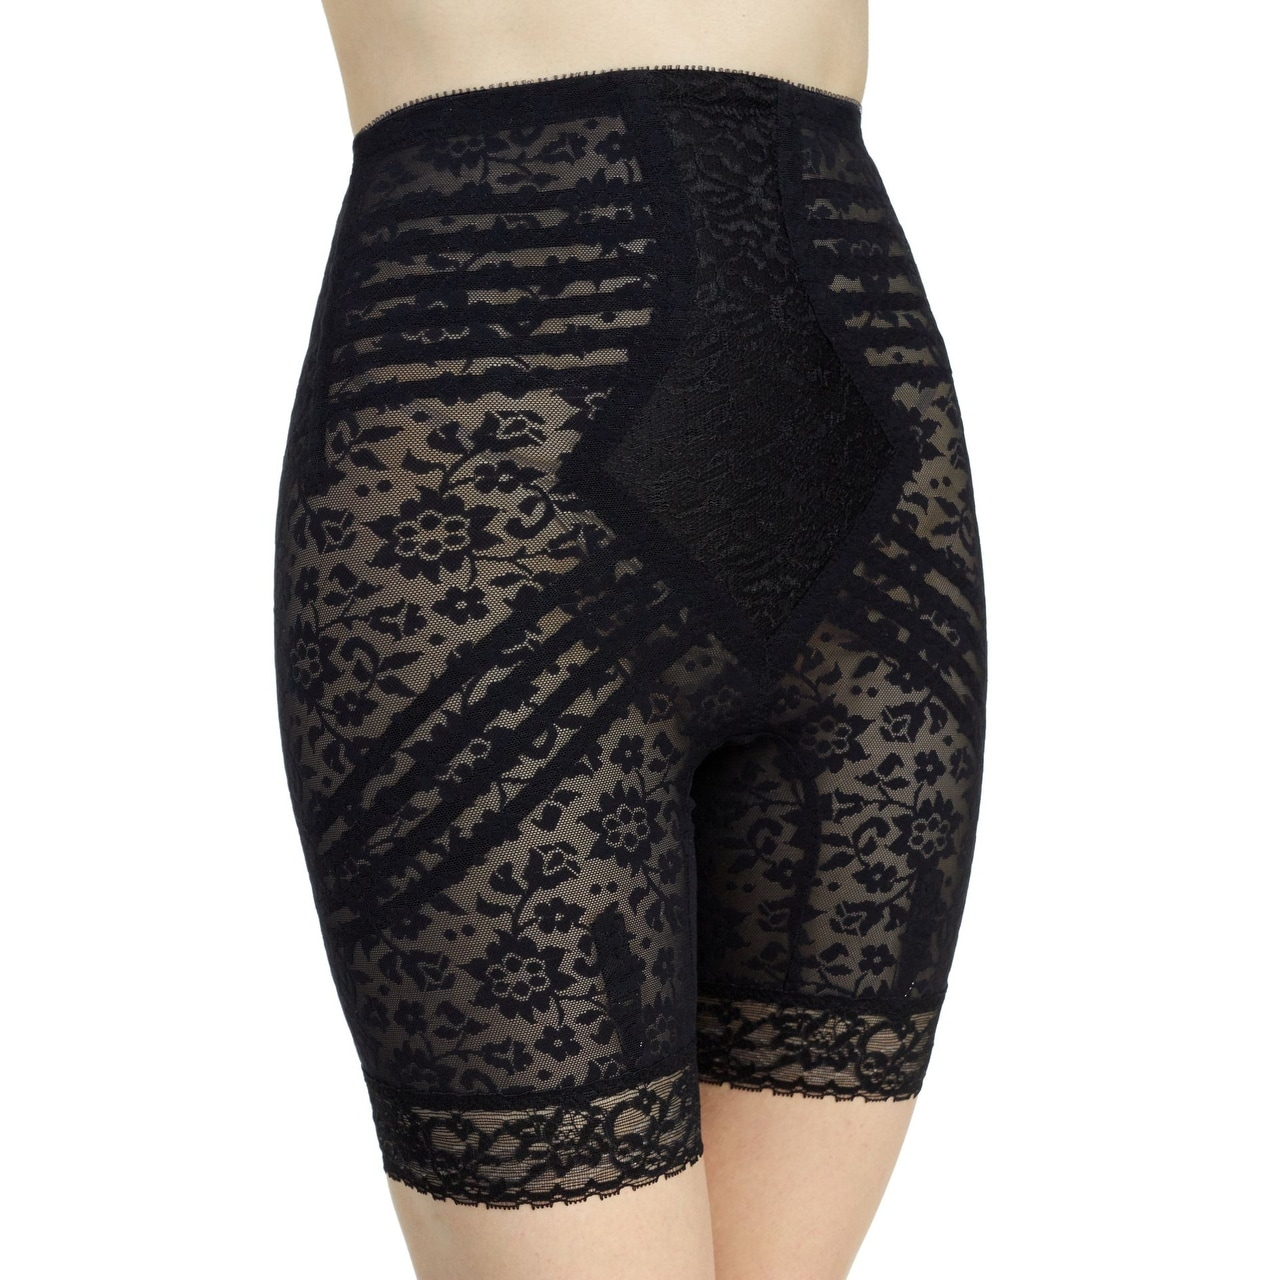 1da8260f608e3 Buy Extra Firm Shapewear Online at Overstock